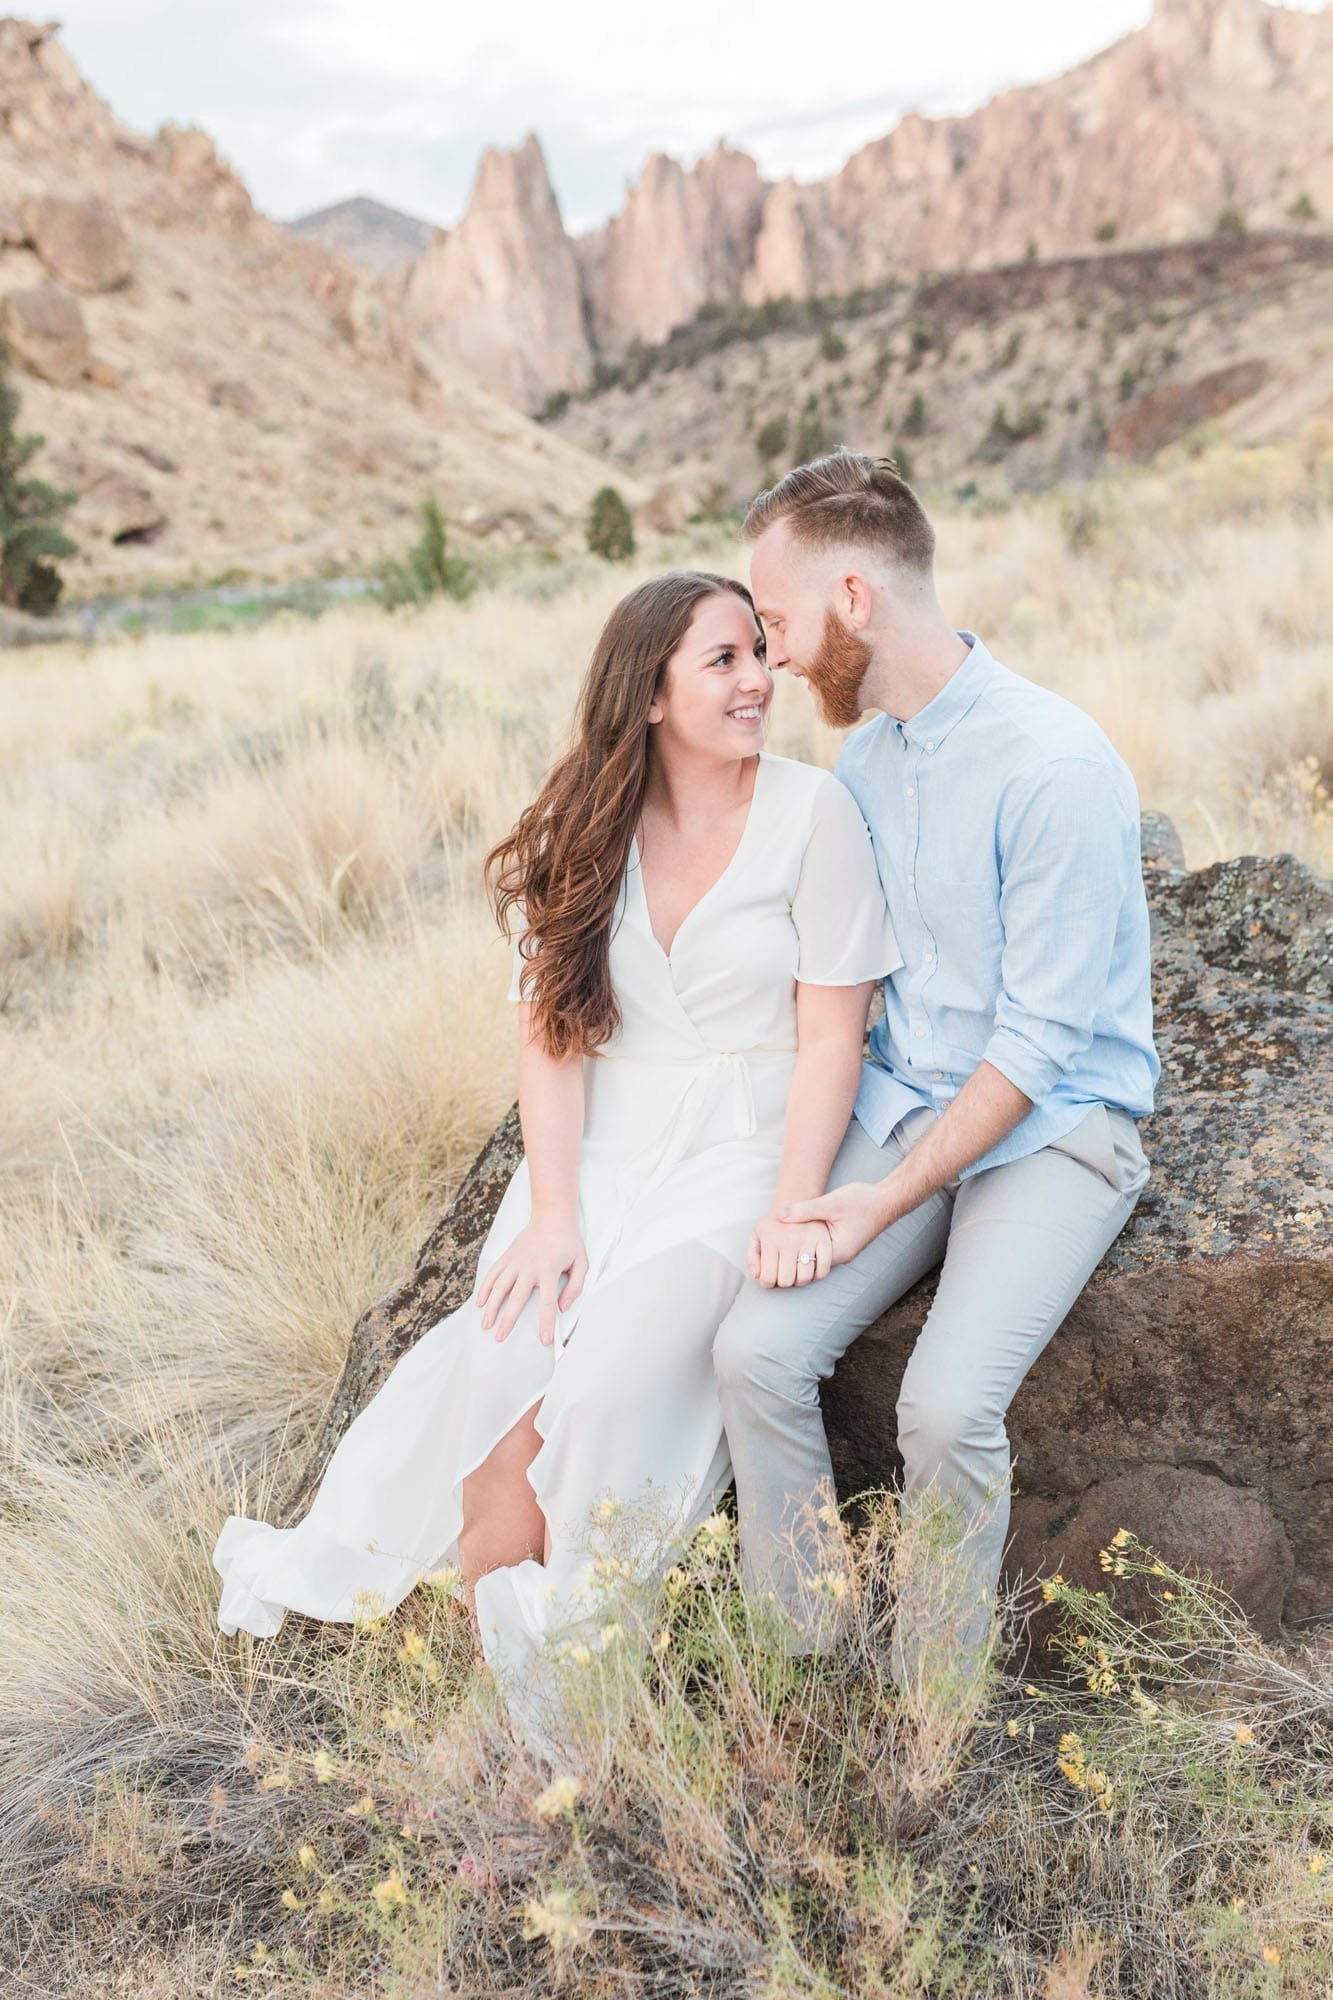 Engagement photos at Smith Rock outside of Bend, Oregon